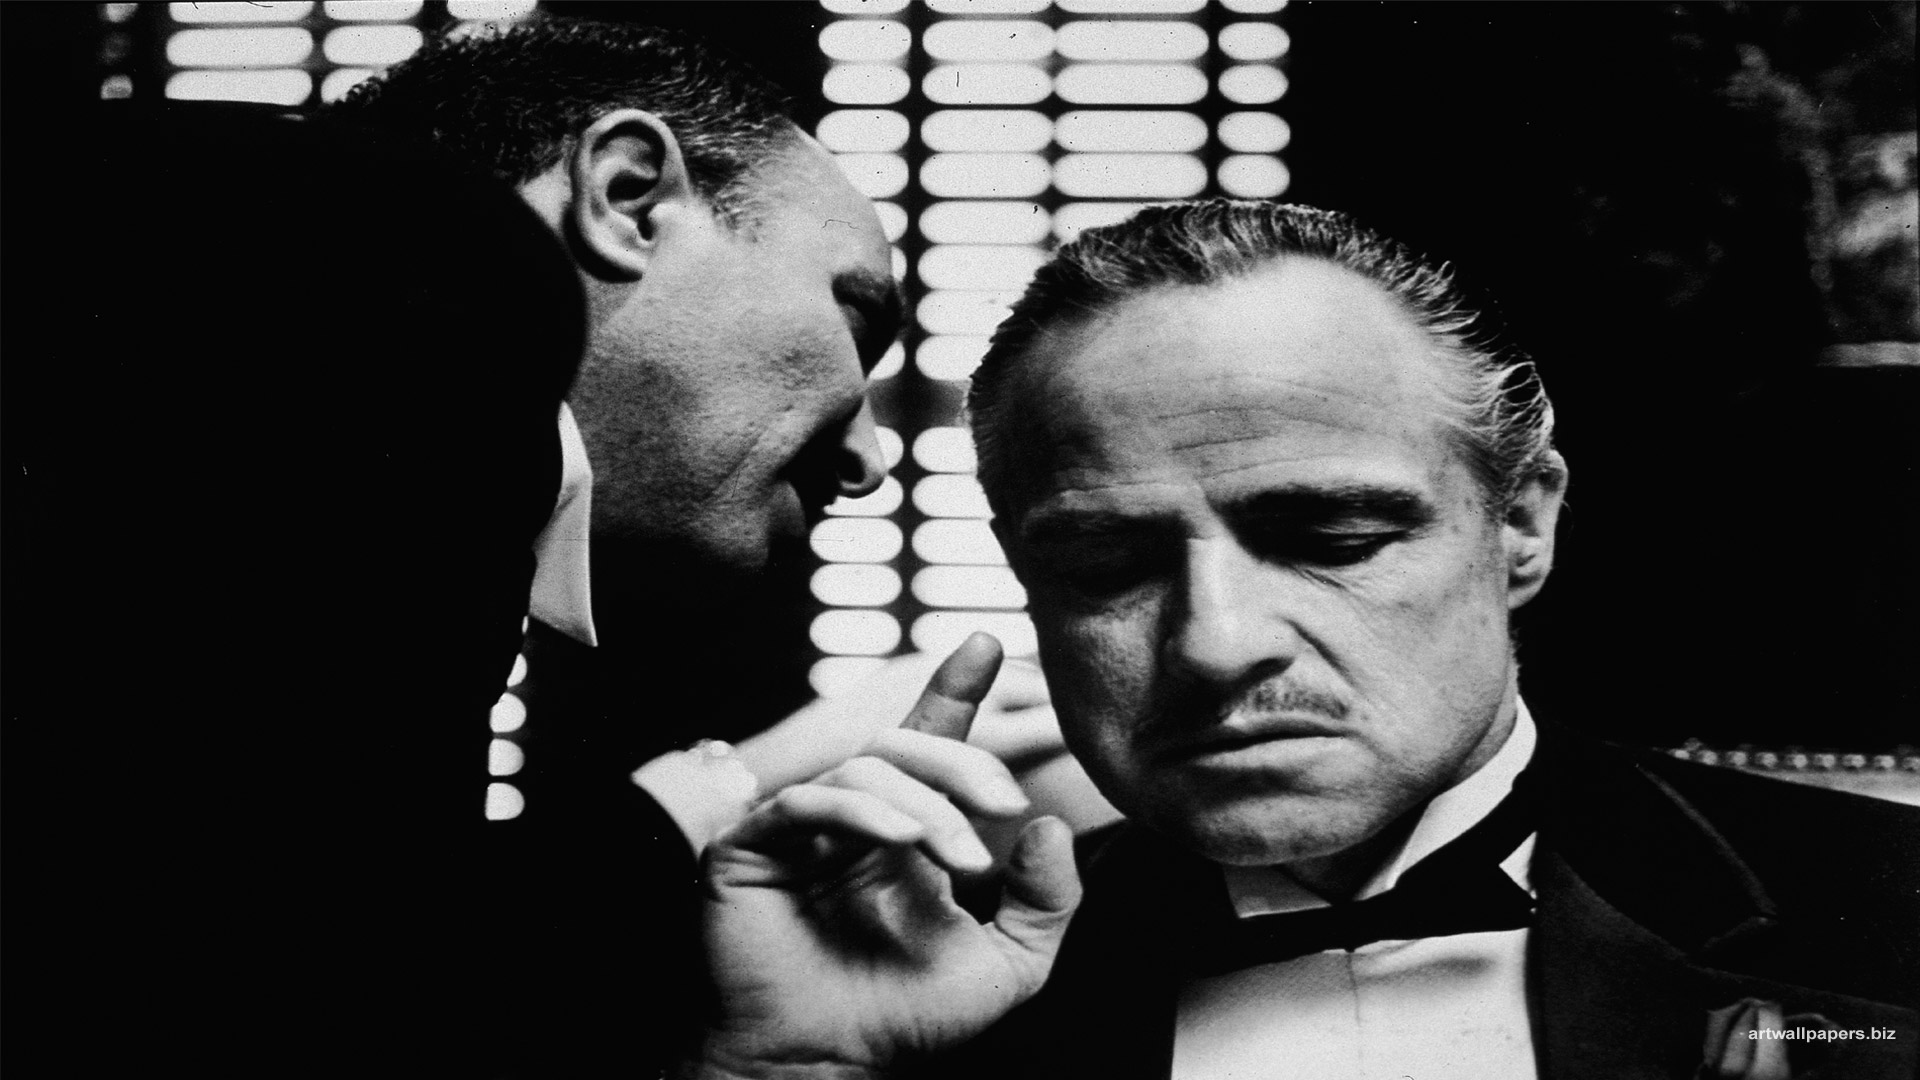 Godfather Hd Wallpaper The Godfather Wallpapers High Quality Download Free